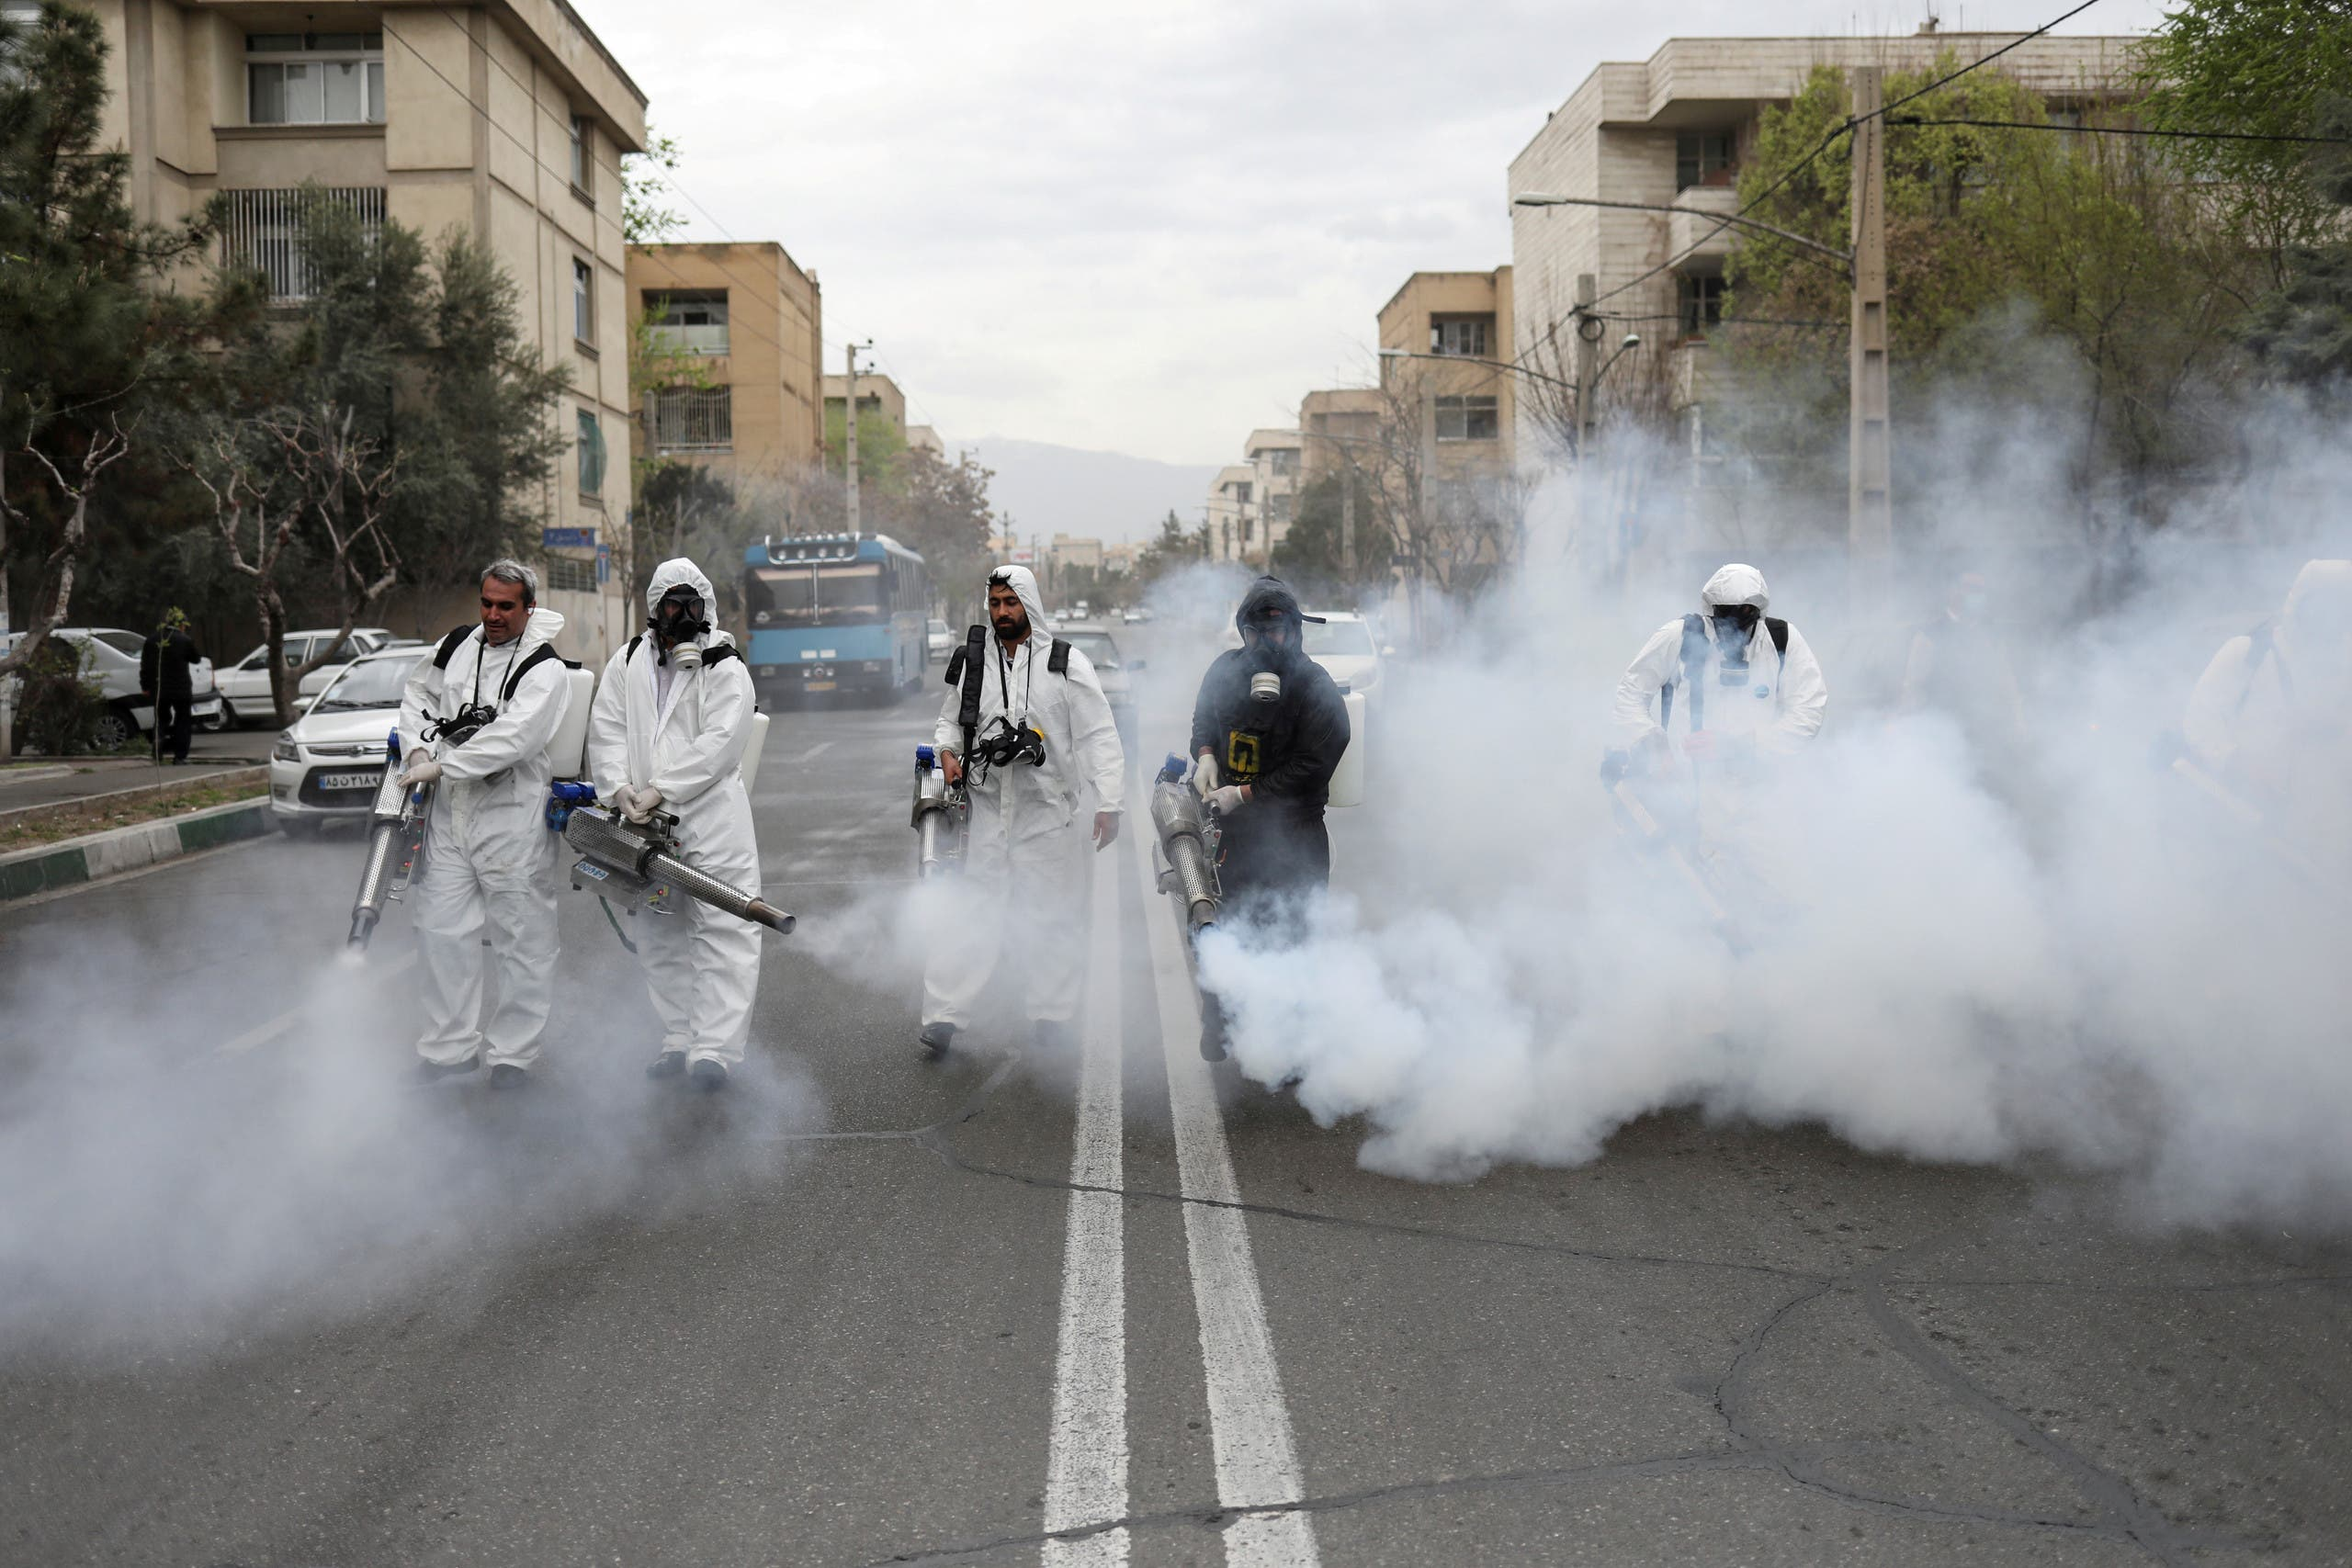 Firefighters wear protective face masks, amid fear of coronavirus, as they disinfect the streets, ahead of the Iranian New Year Nowruz, March 20, in Tehran, Iran. (File photo: WANA (West Asia News Agency)/Ali Khara via Reuters)